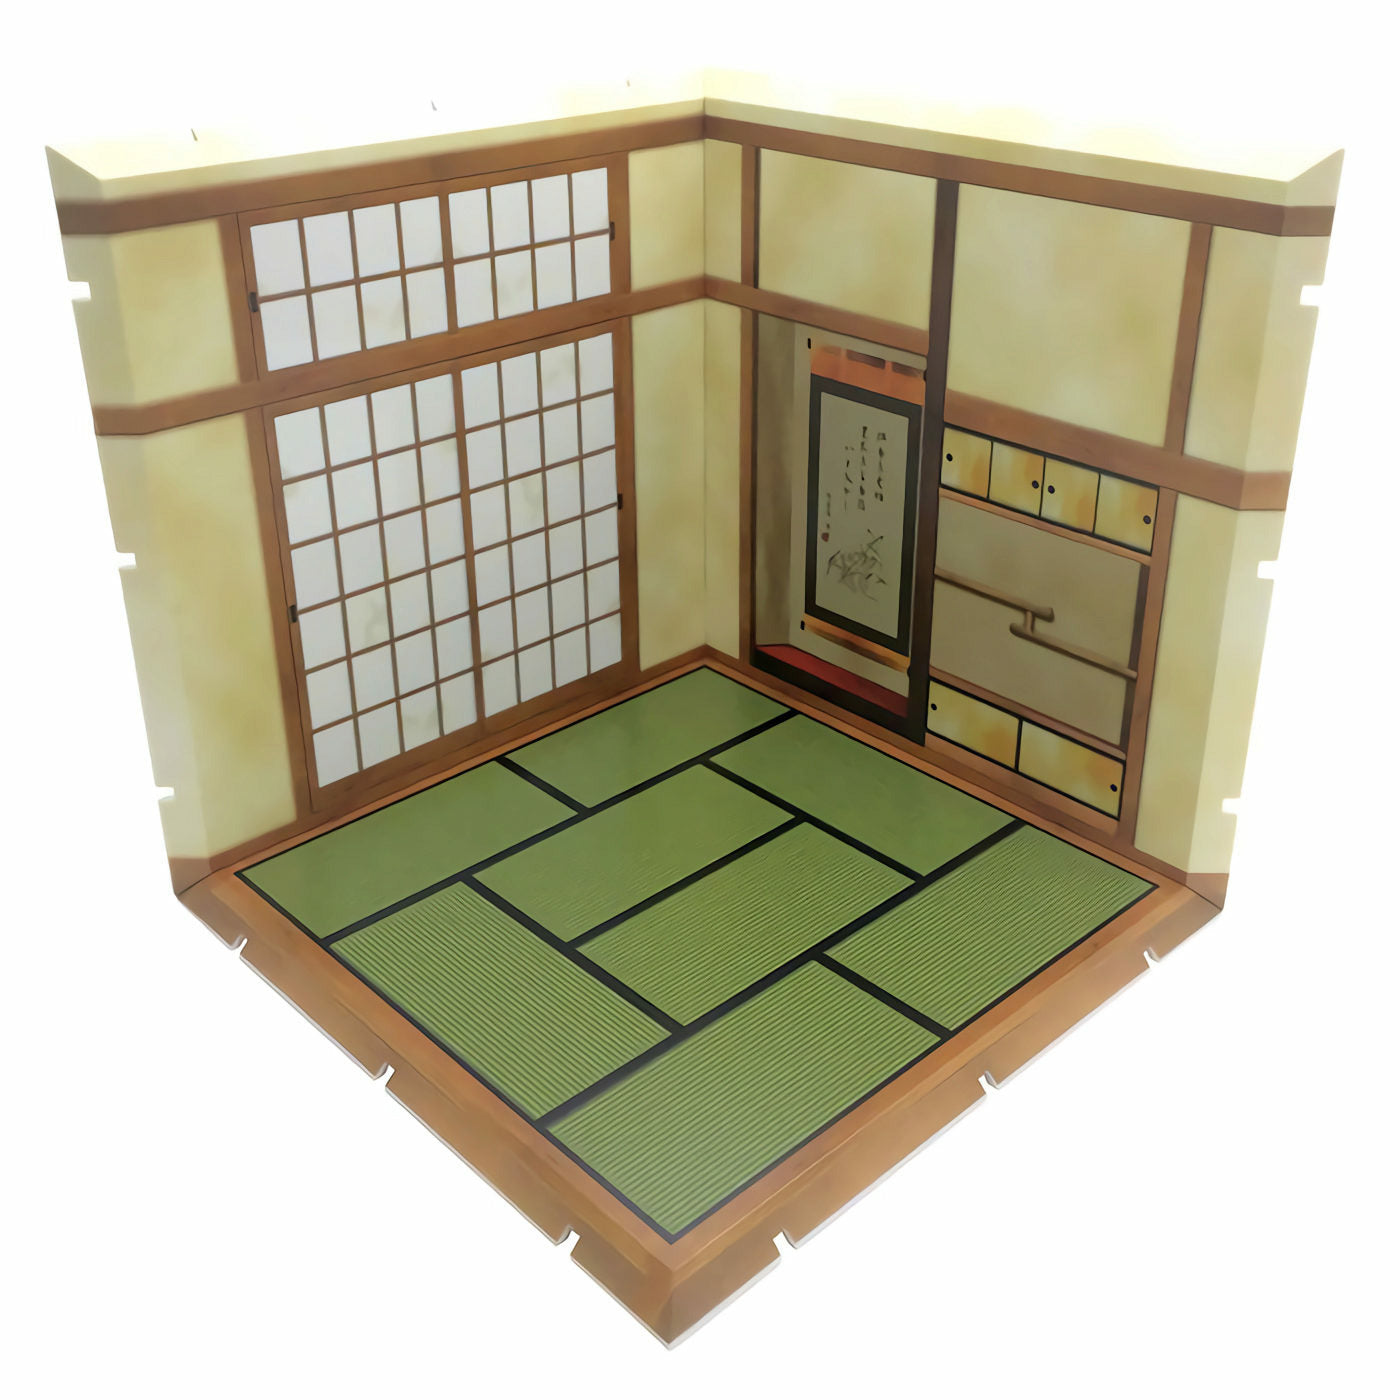 Diorama Mansion 150 Japanese-style Room Model Play Set